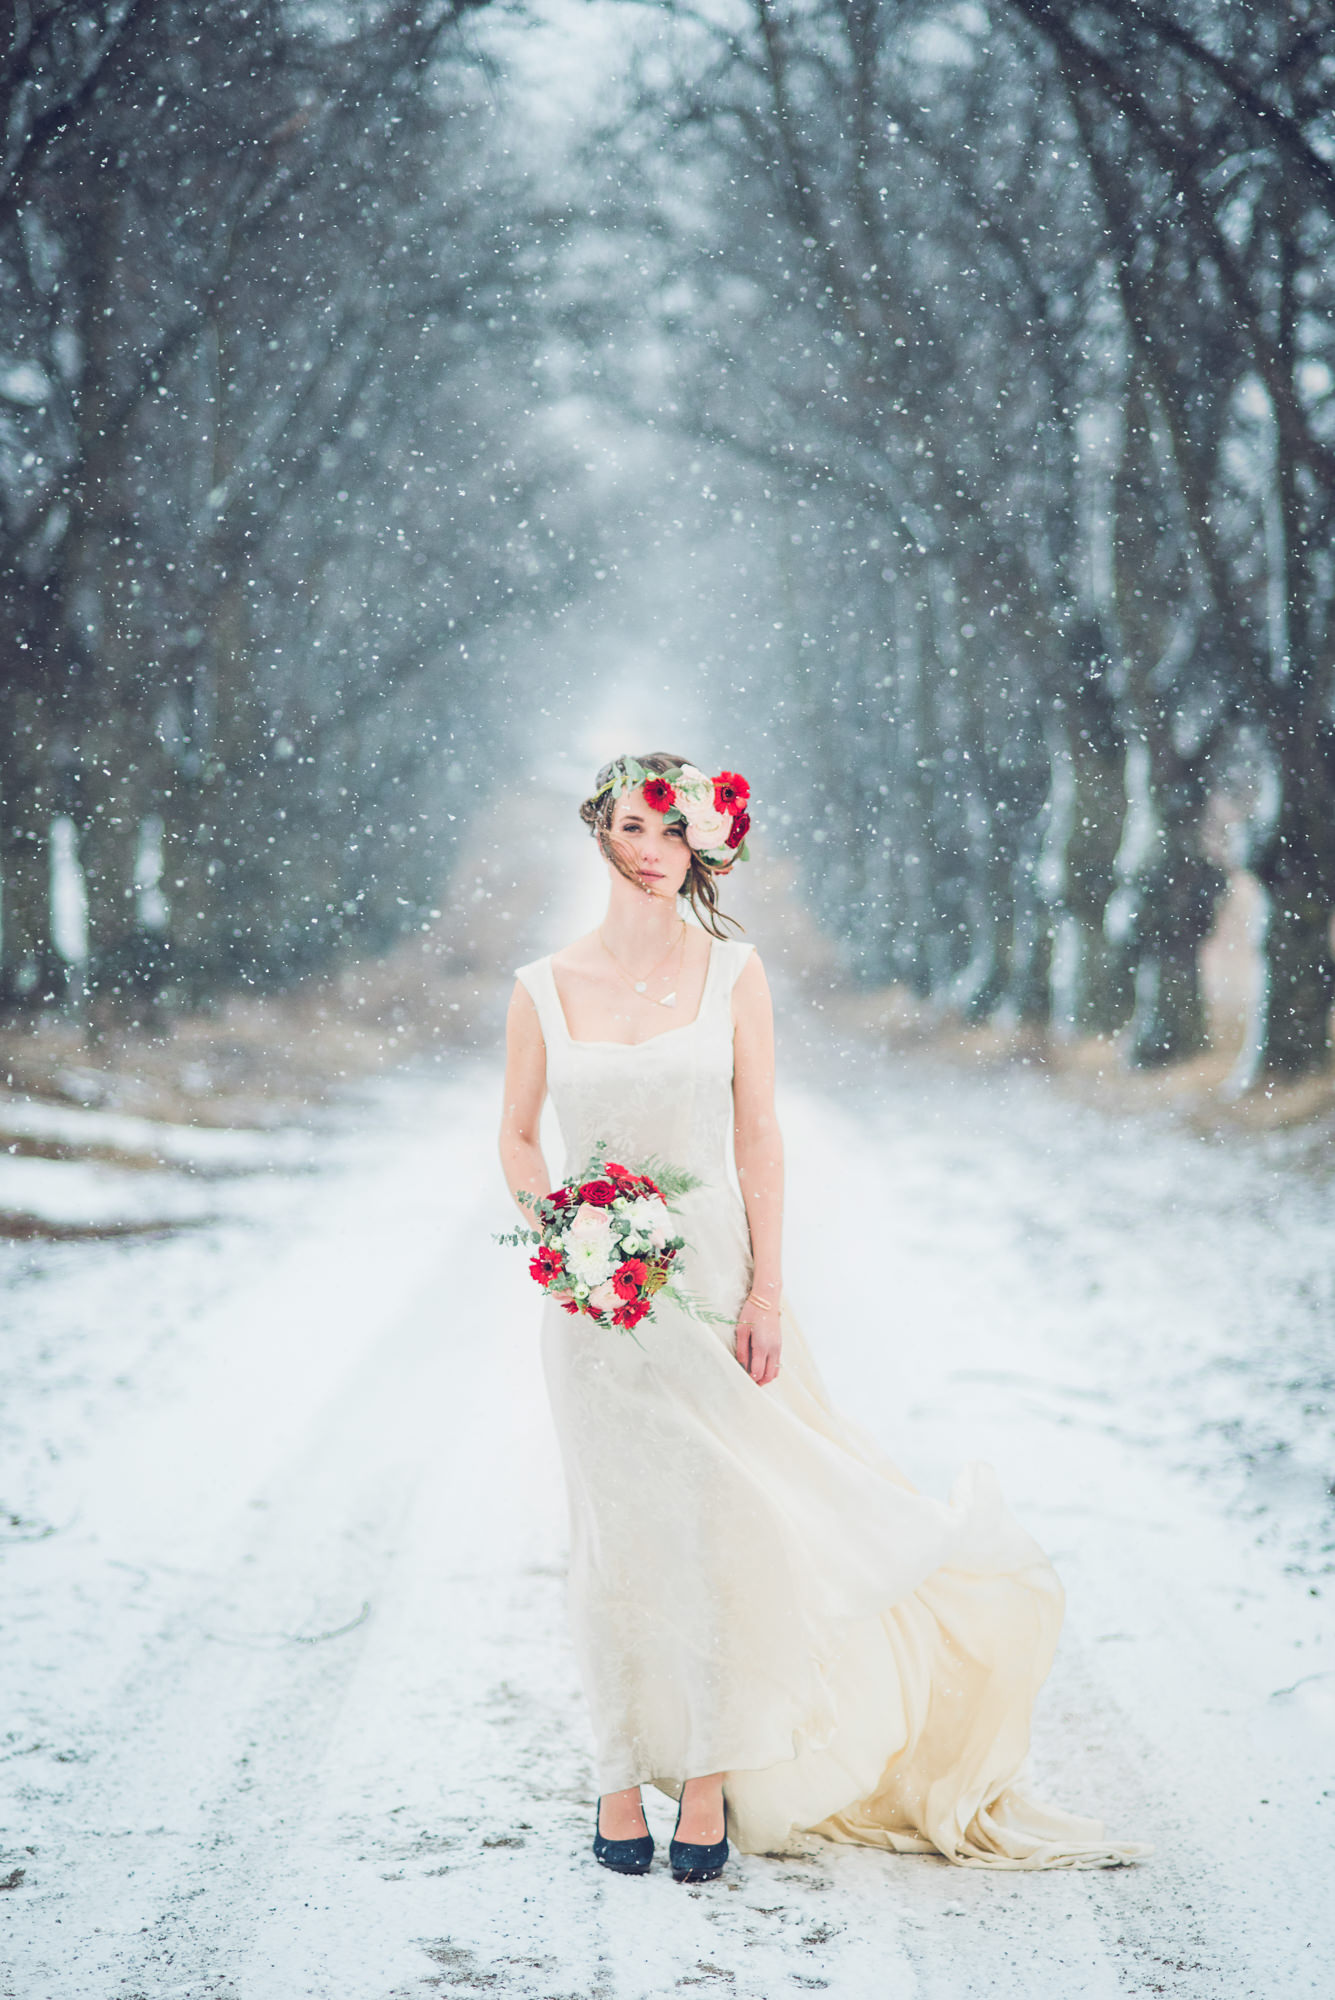 Bride in winter wearing red and white anemome floral crown - photographed by Nordica Photography - Sweden